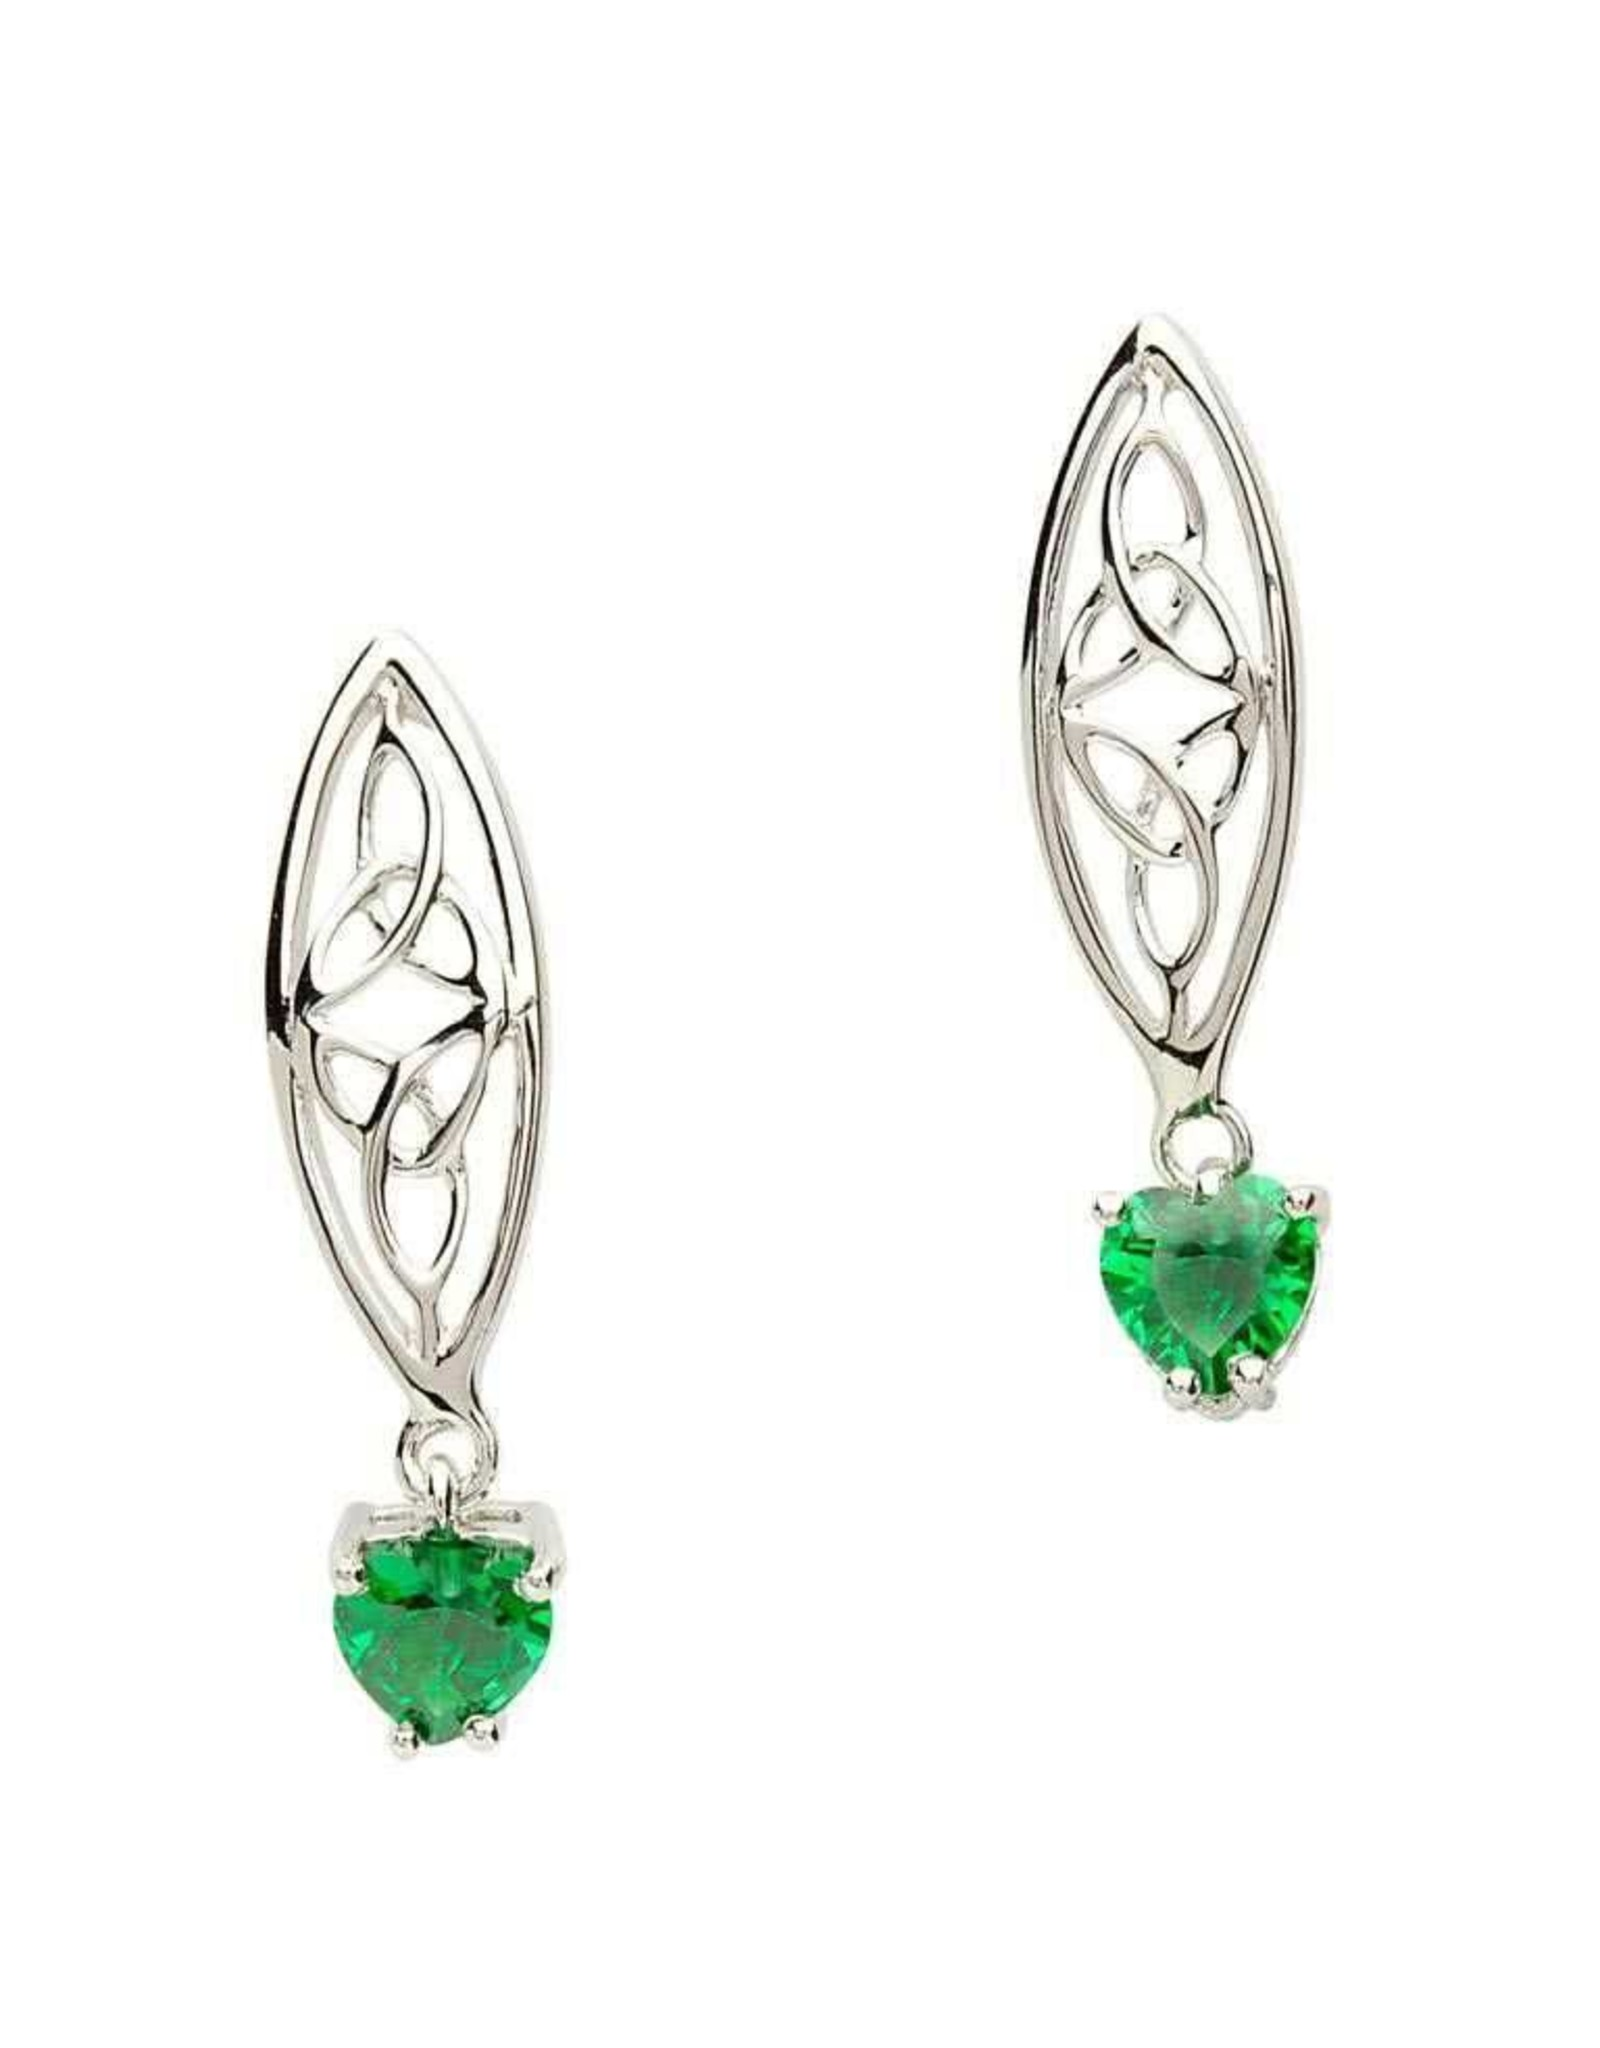 Shanore SIlver Double Trinity Earrings with Green Hearts